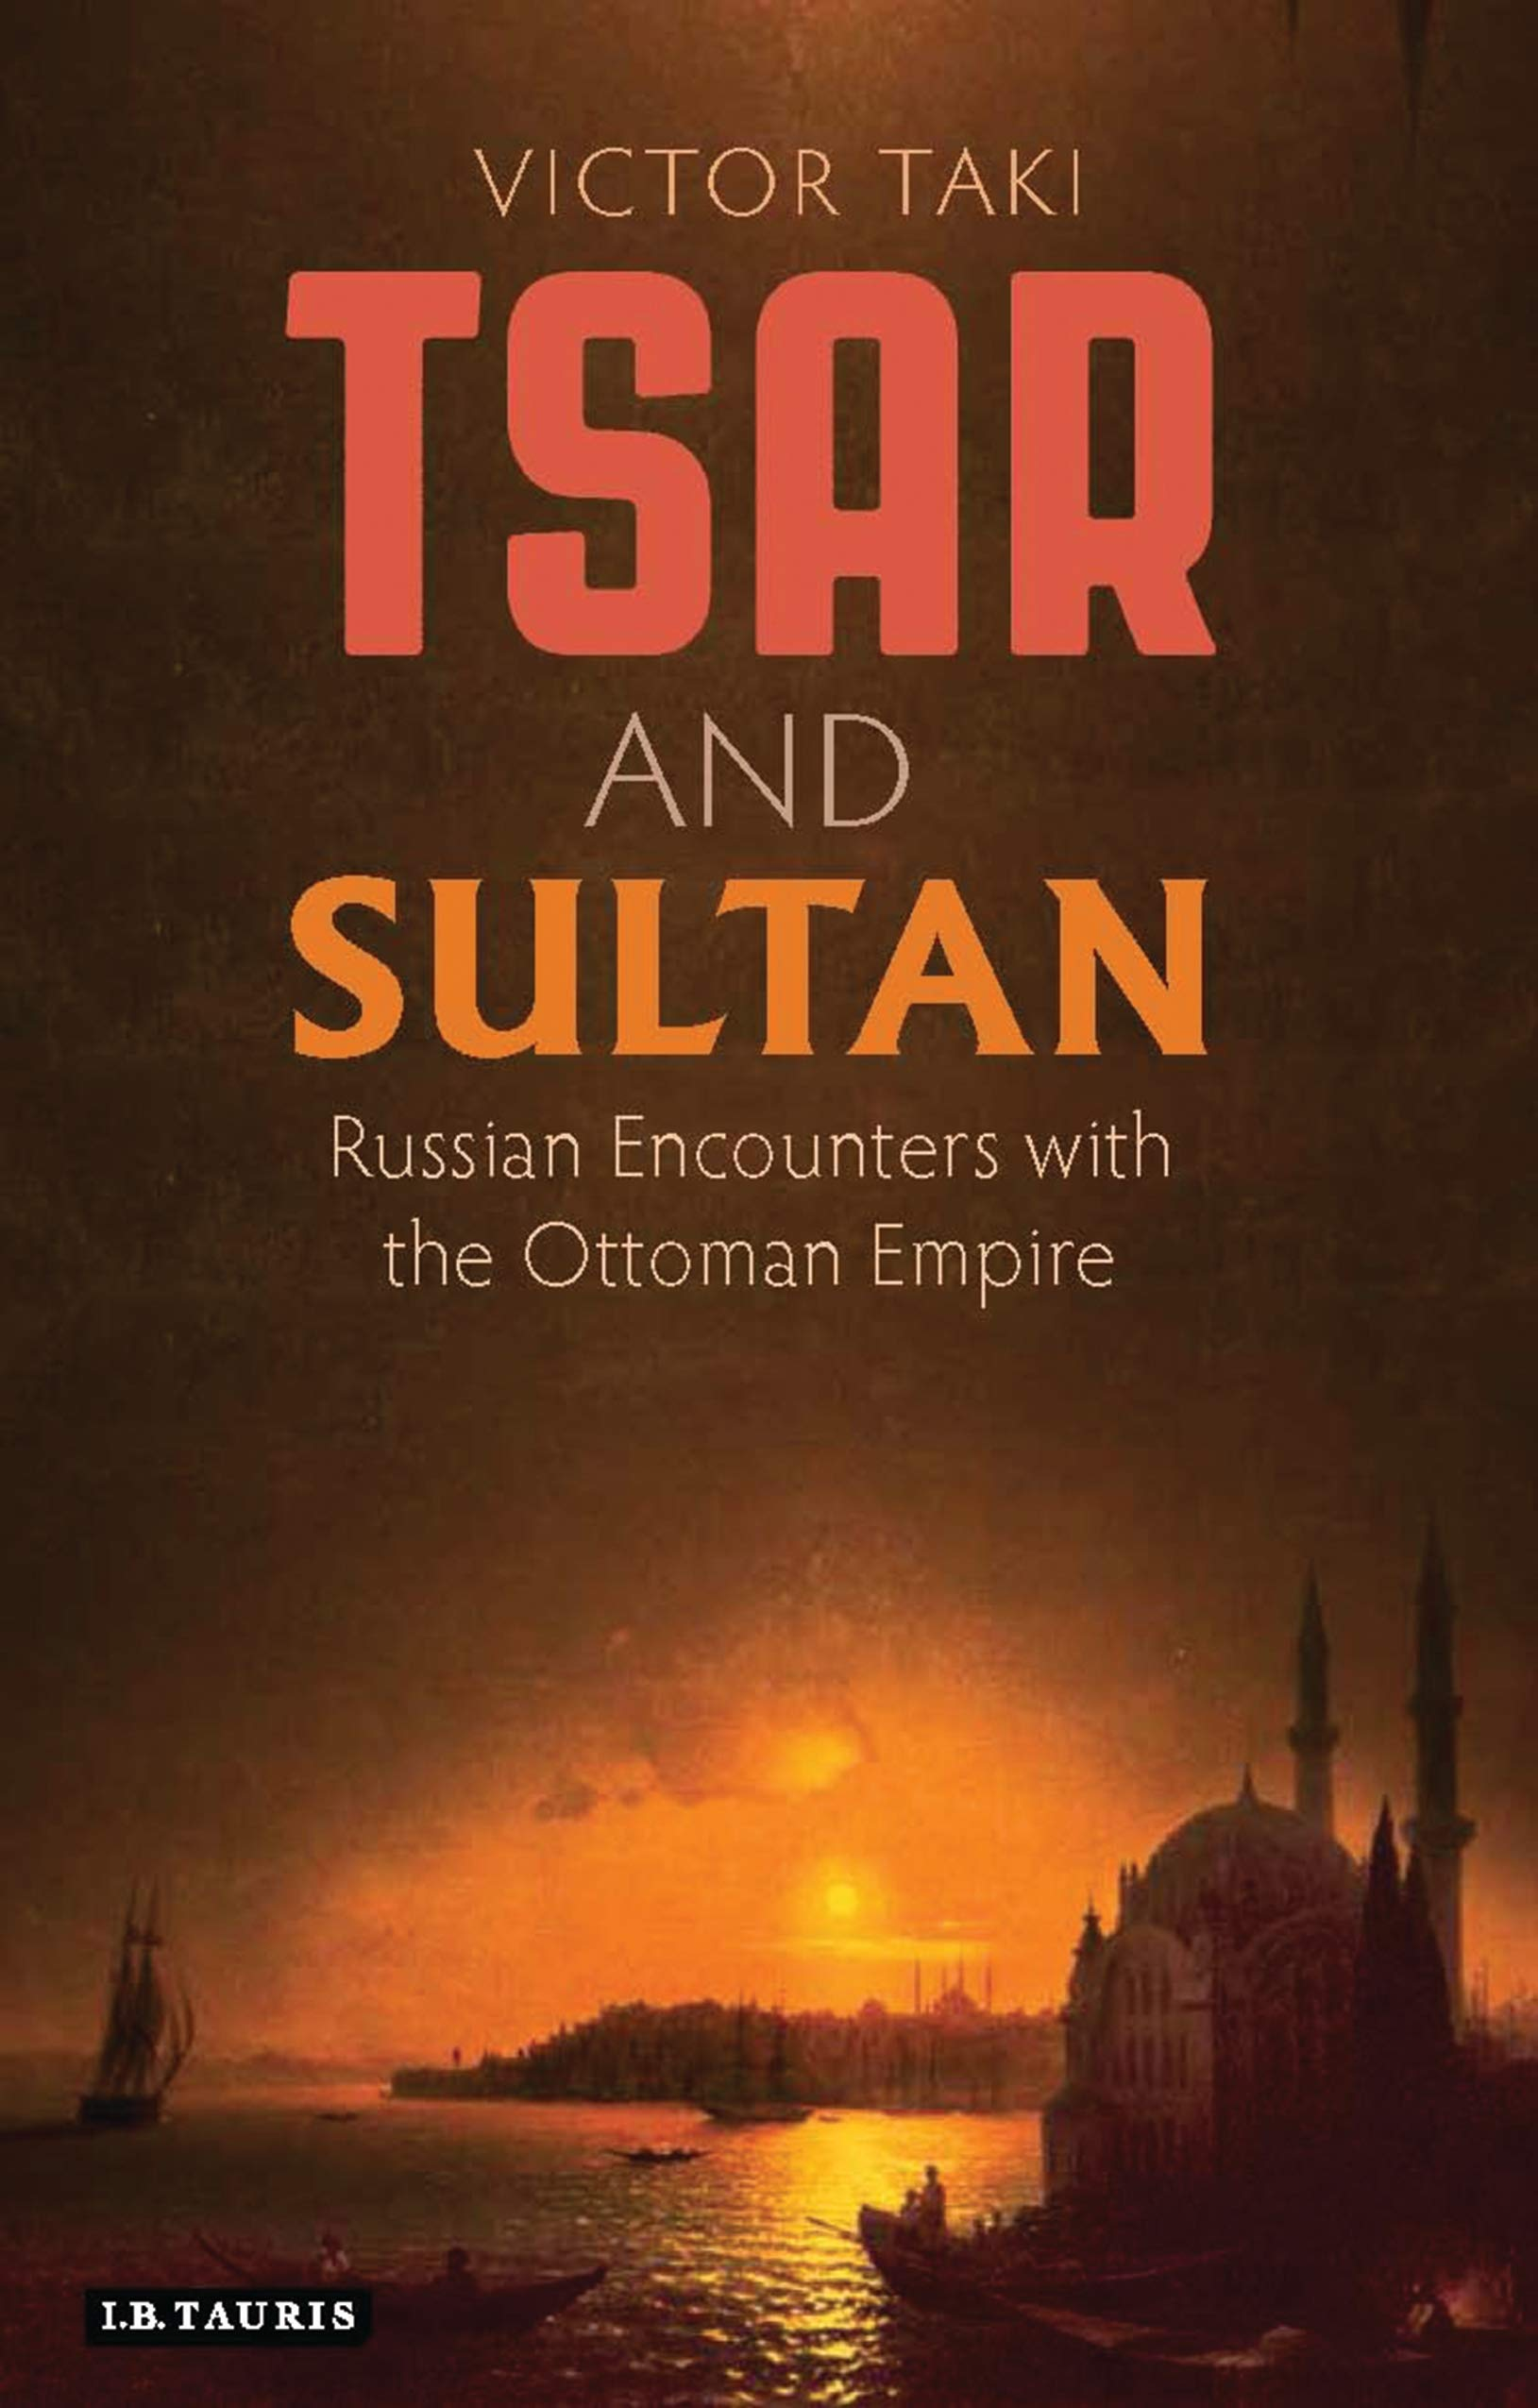 Tsar and Sultan: Russian Encounters with the Ottoman Empire (Library of Ottoman Studies) by I.B. Tauris